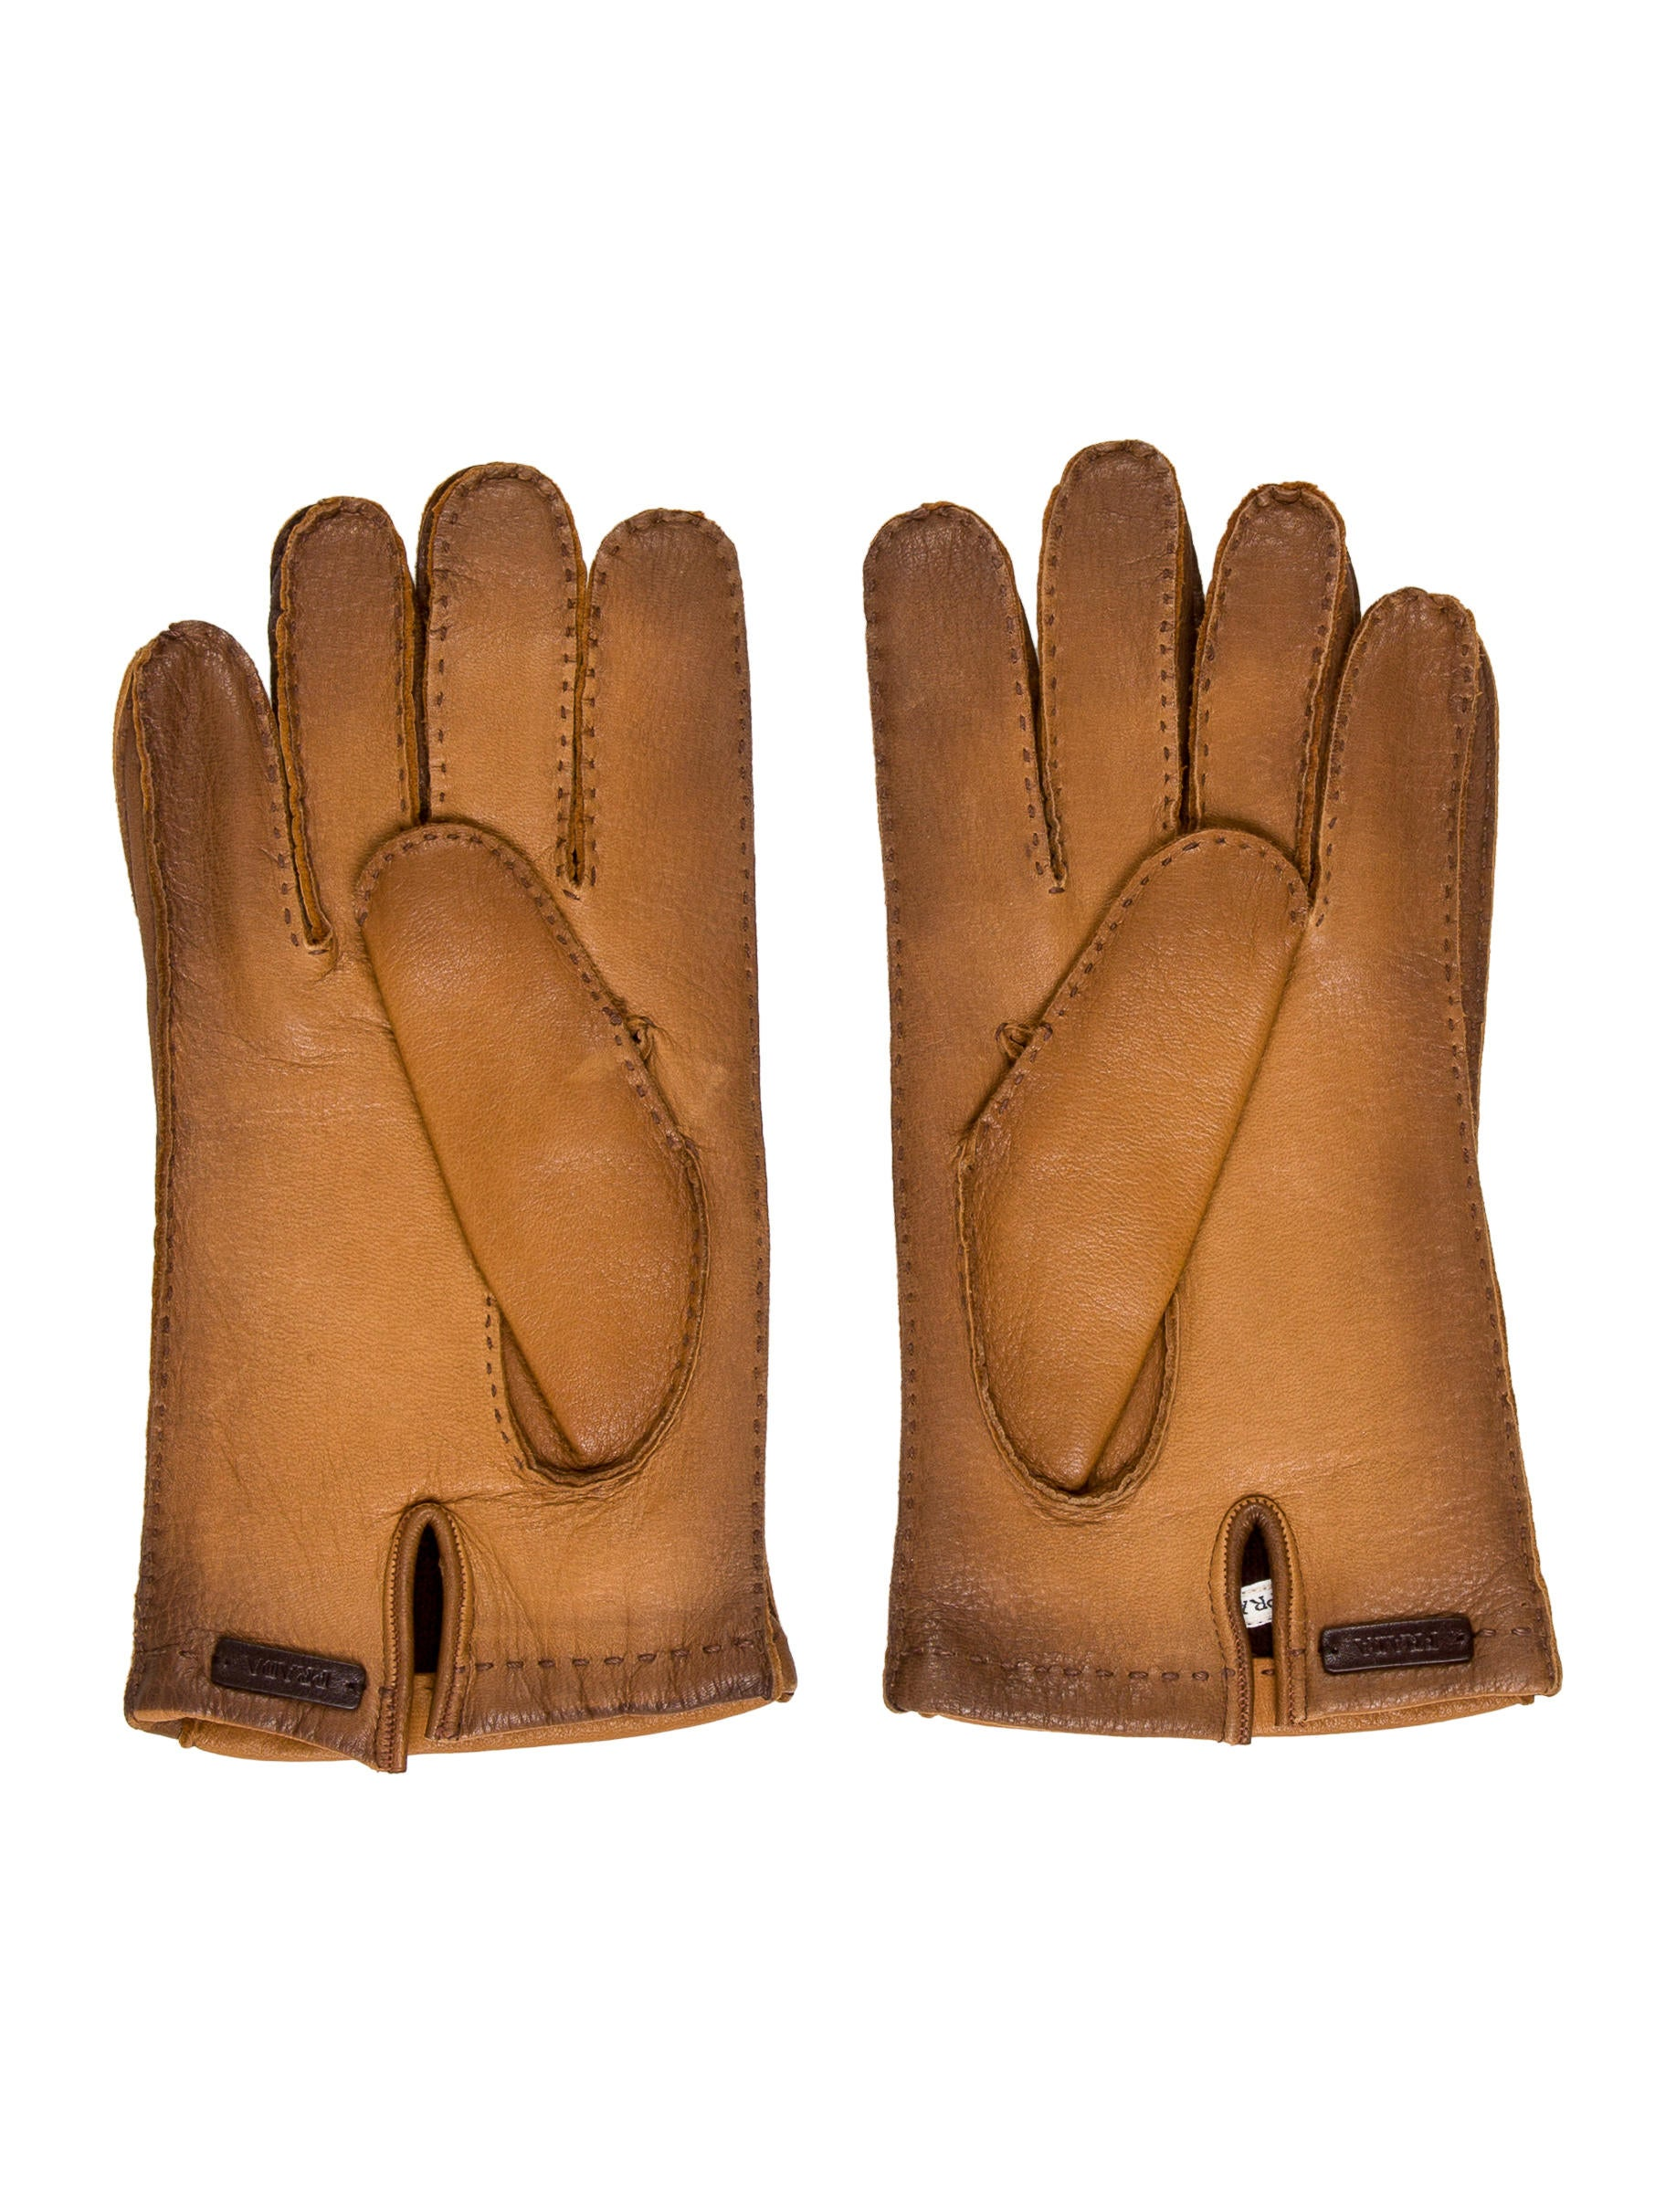 Prada mens leather gloves - Cashmere Lined Leather Gloves